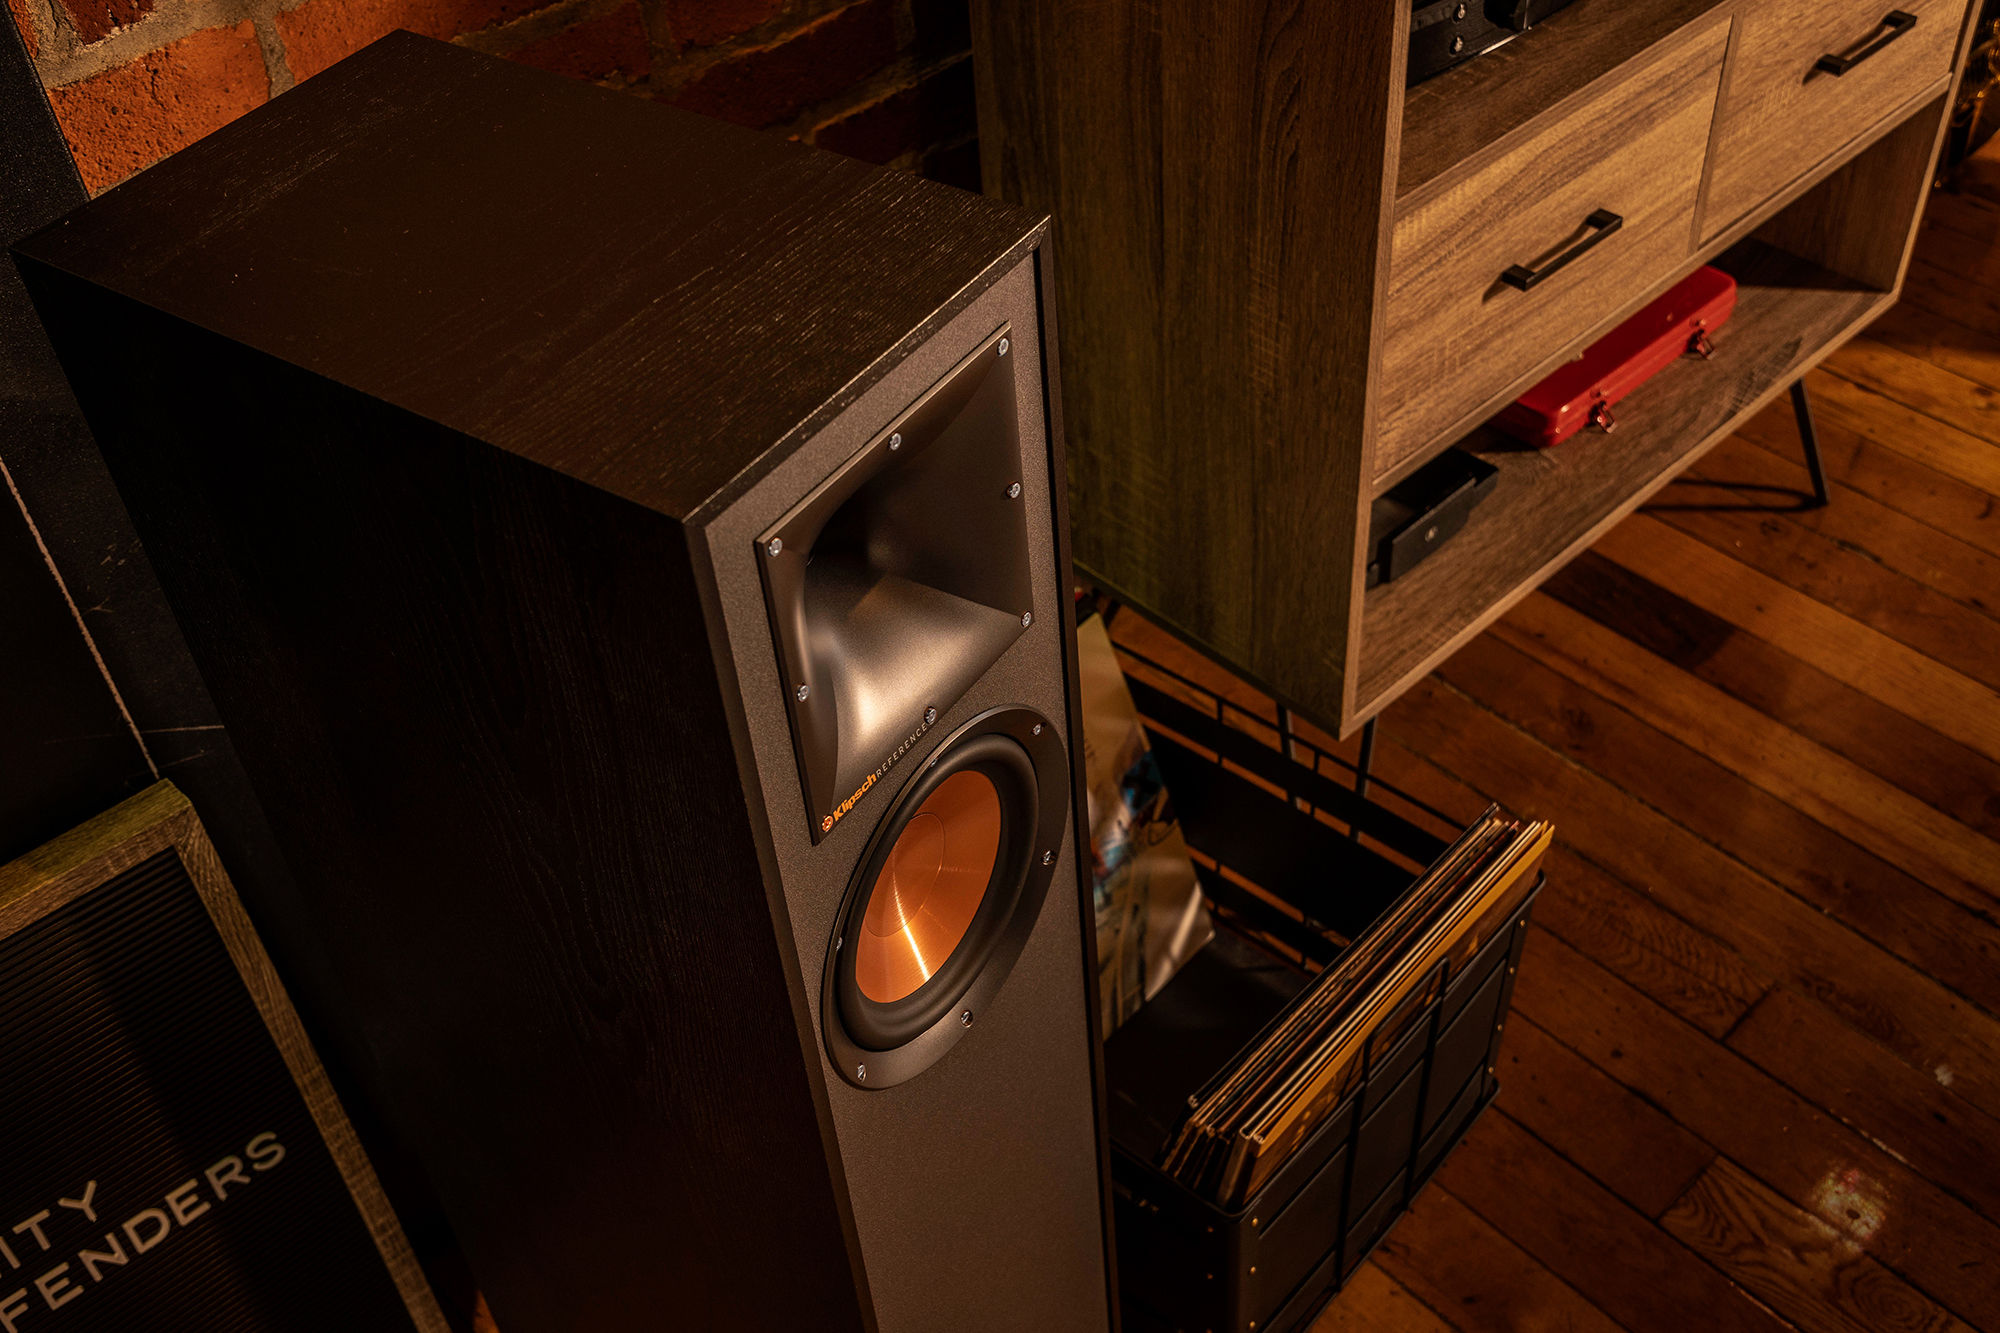 R-610F speaker with basket of records